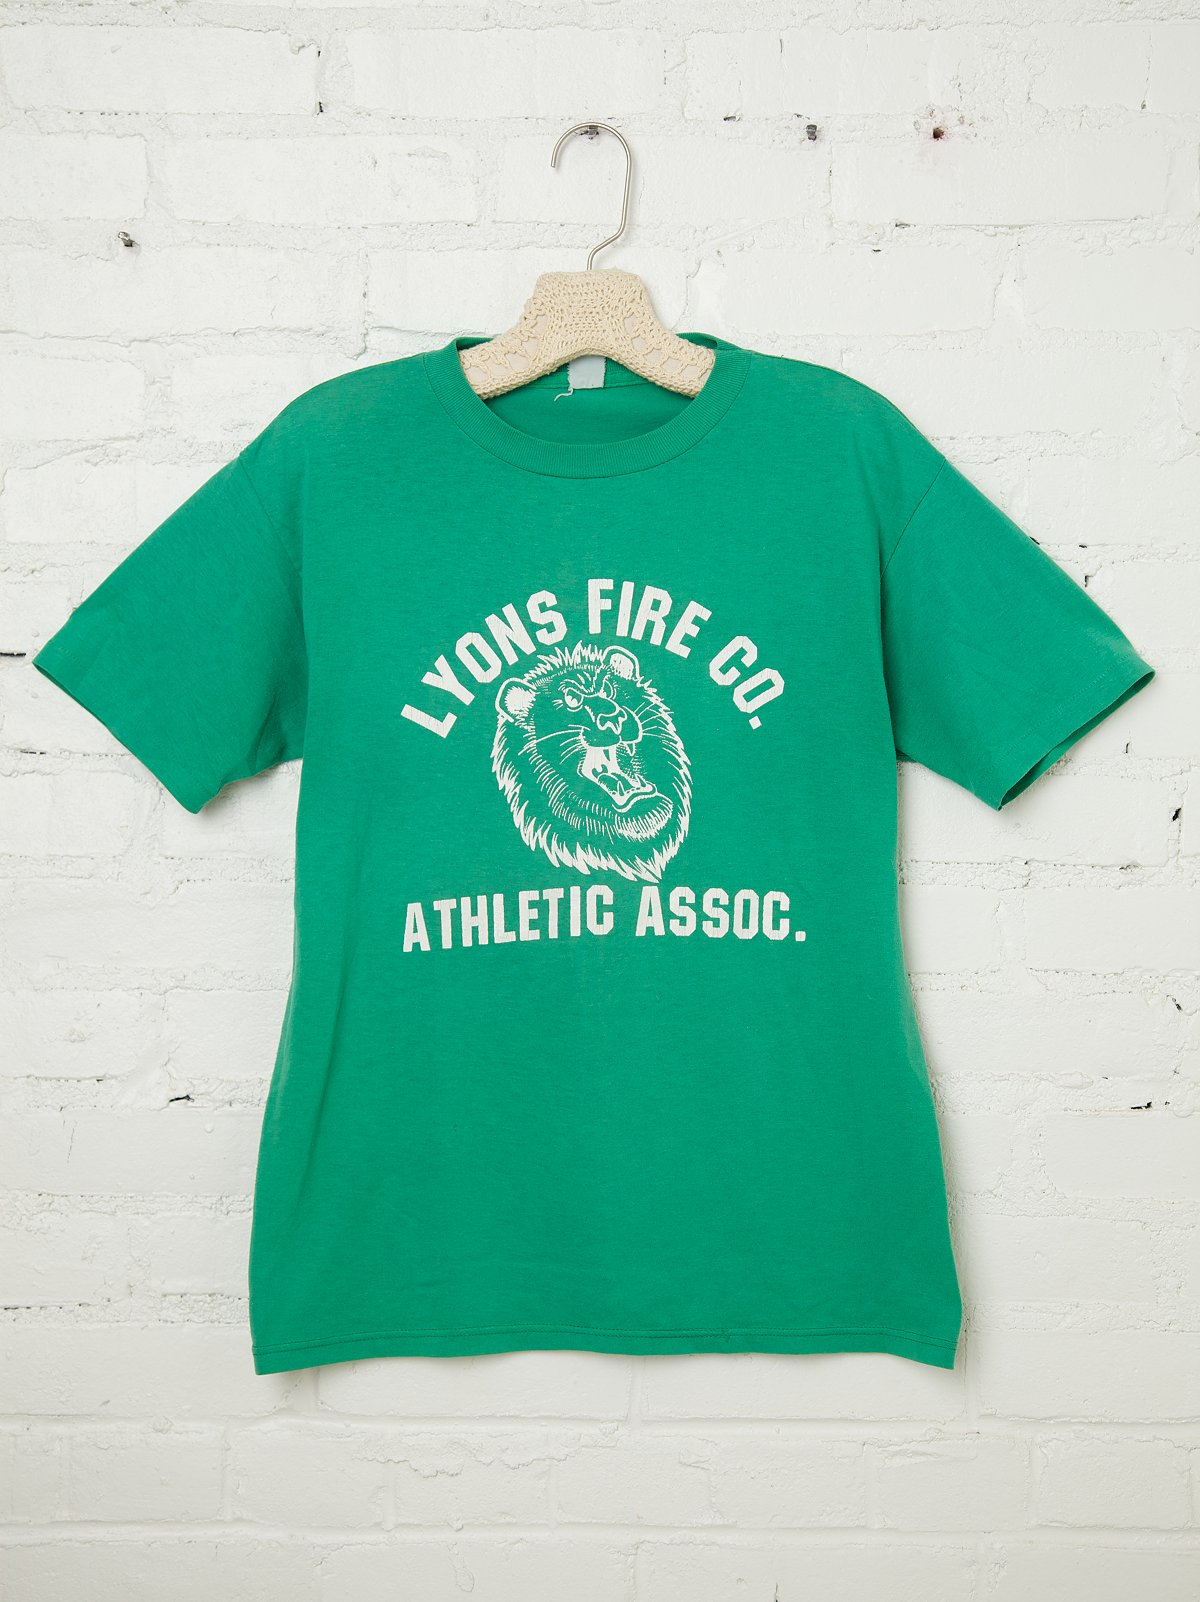 Vintage Lyons Fire Co. Tee